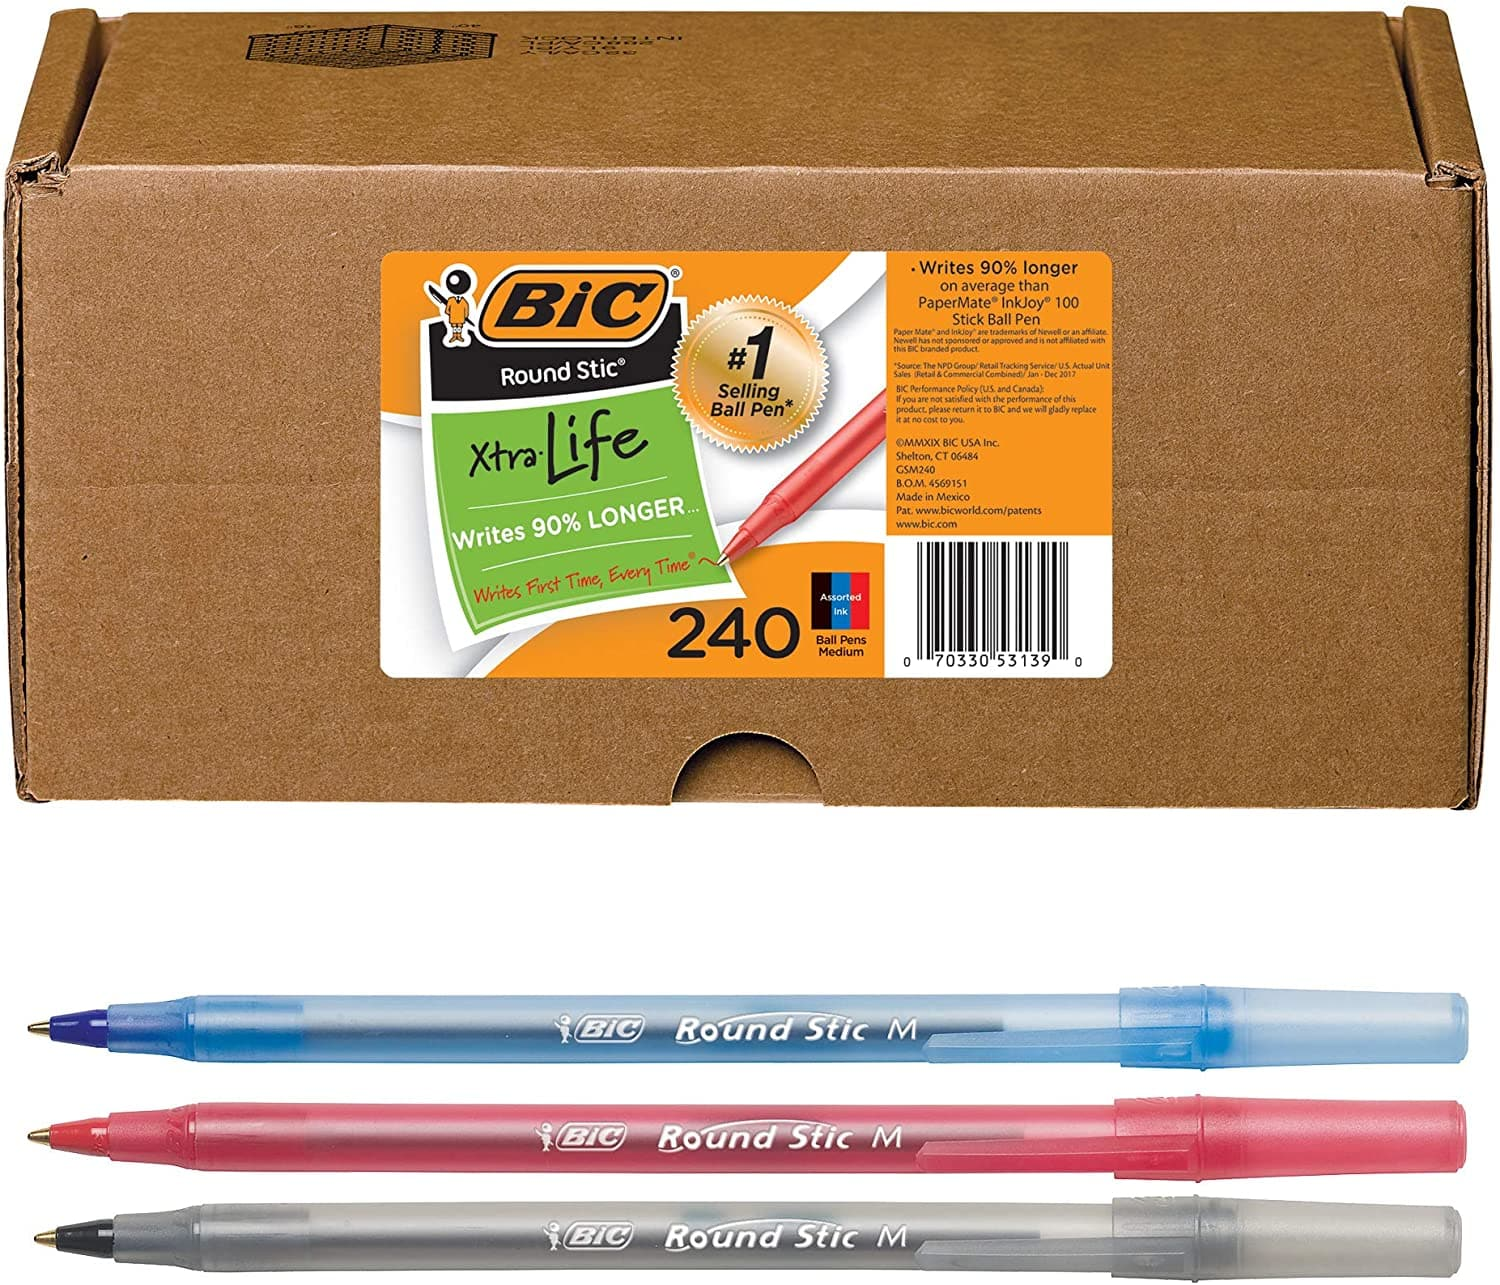 Woot, 240 ct BIC Round Stic Xtra Life Ballpoint Pen (Black, blue, red), $11.25, free shipping for Prime members